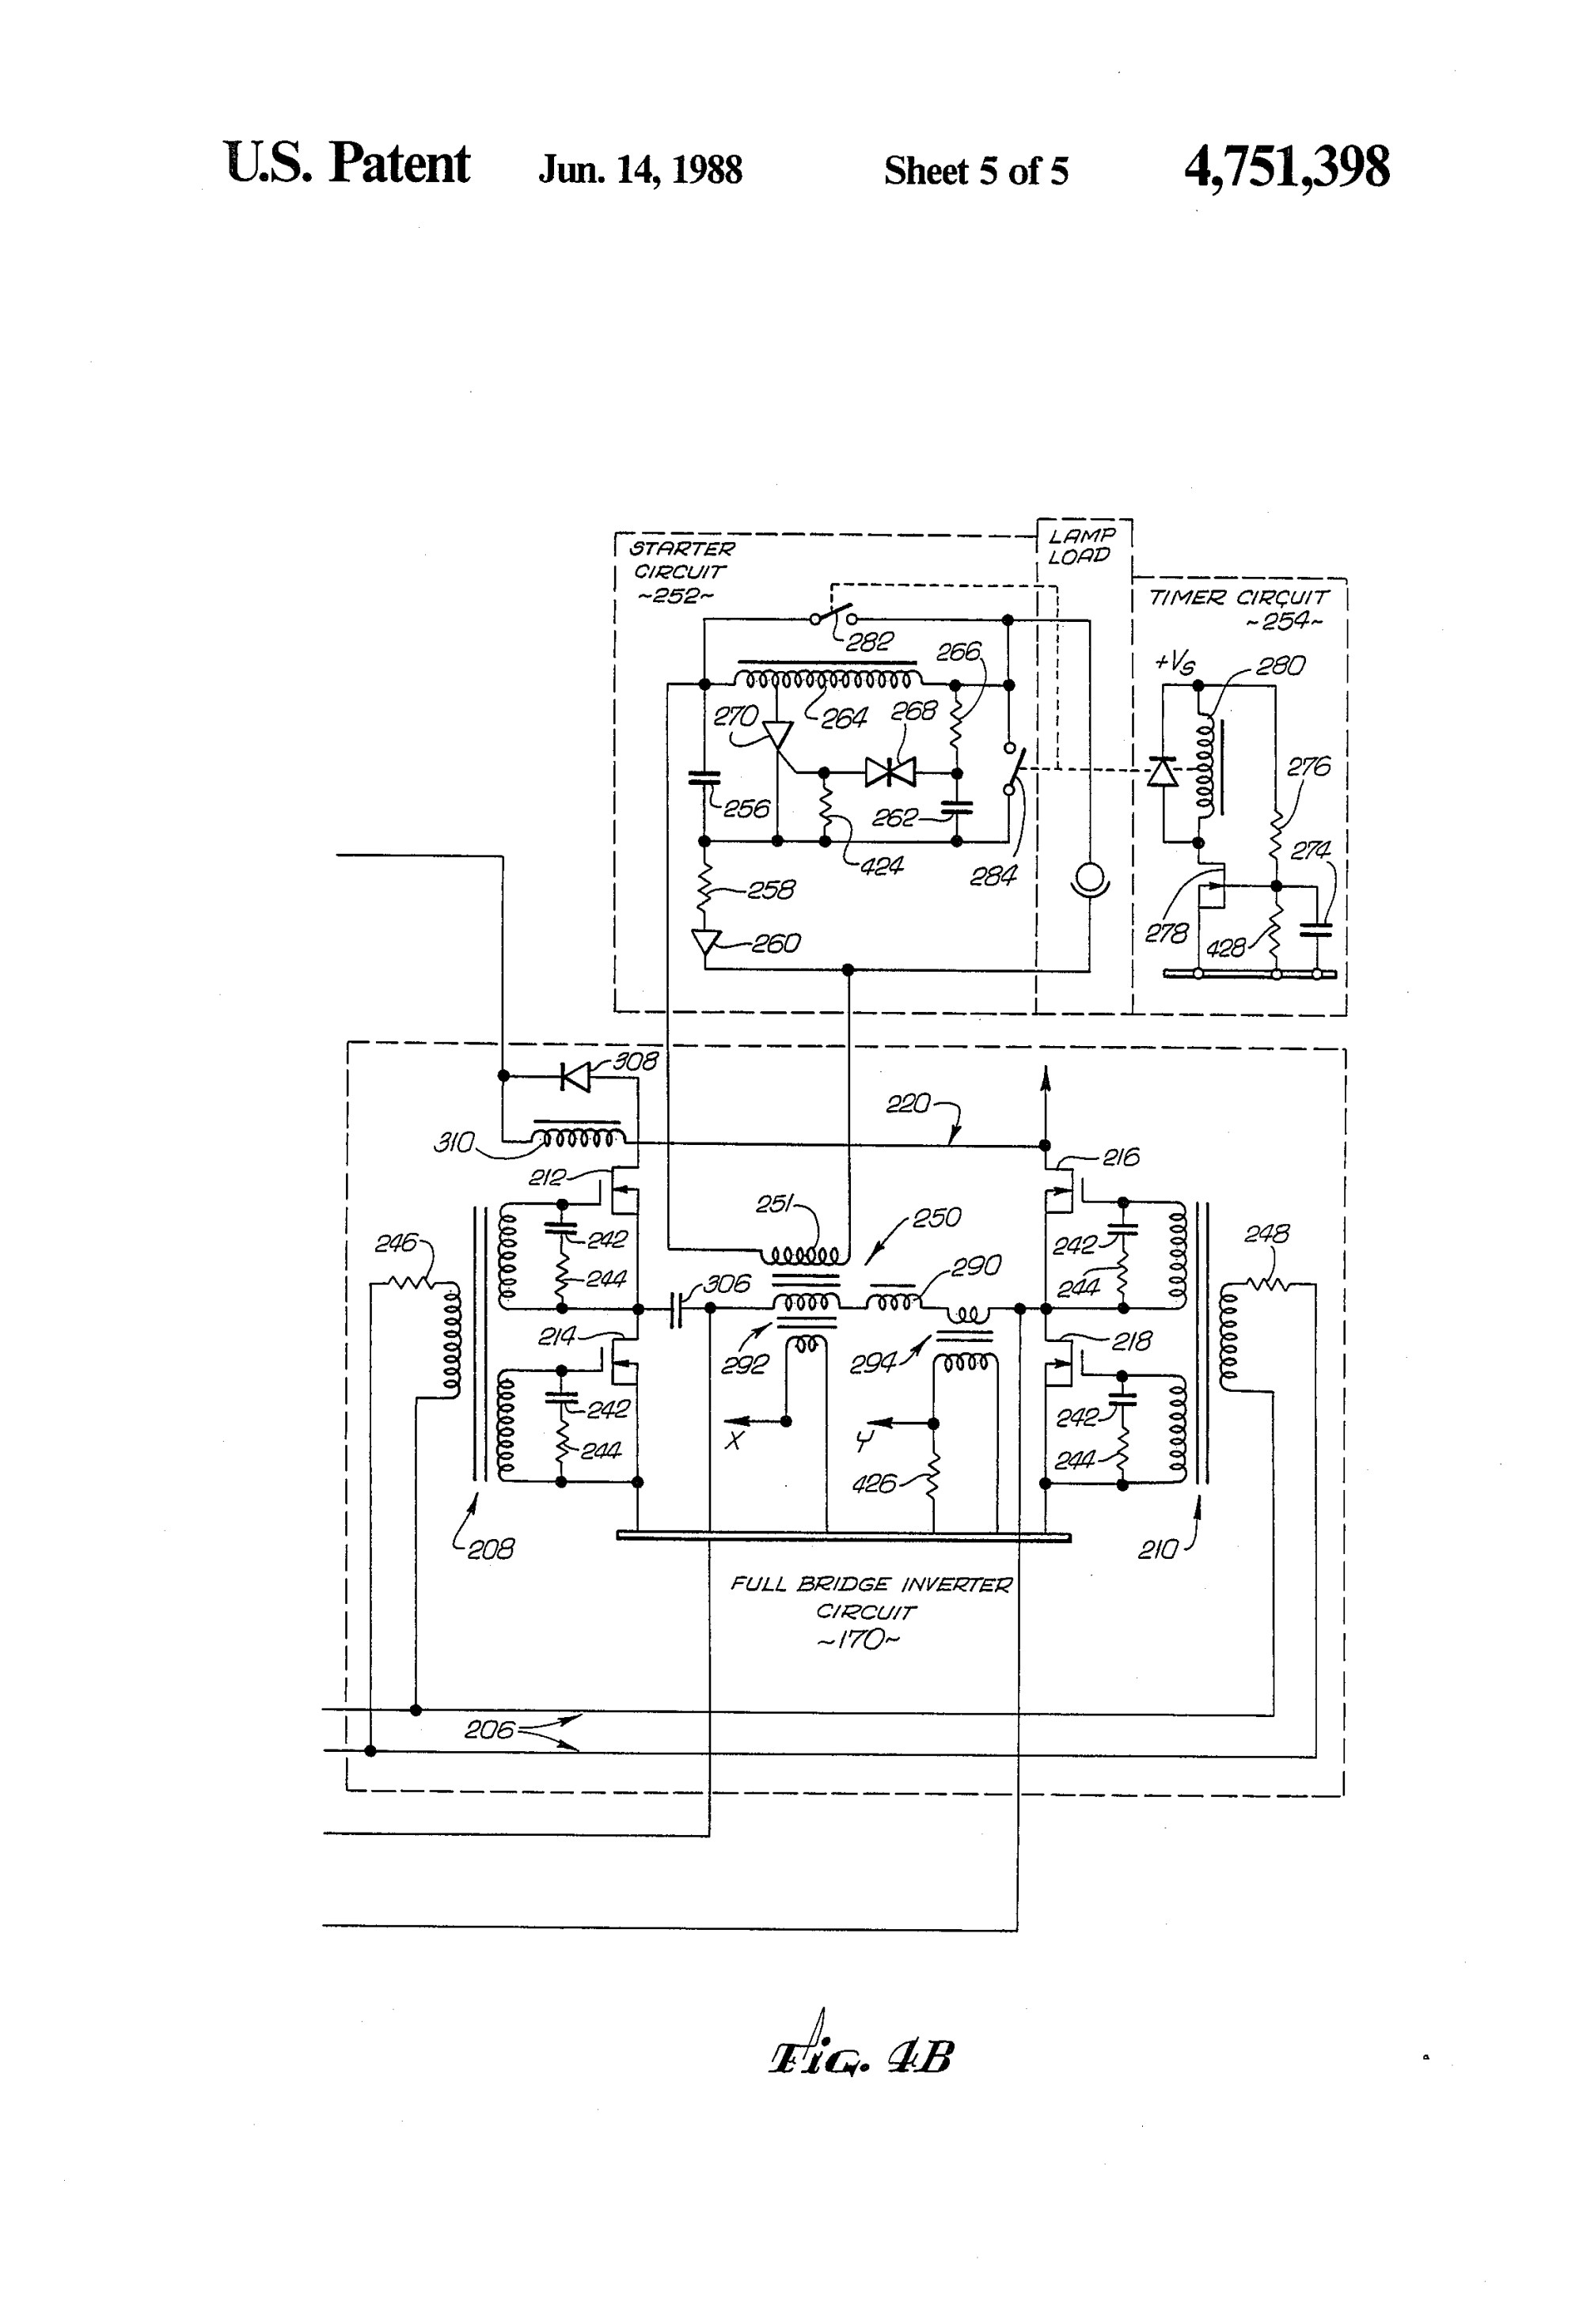 hight resolution of bodine led wiring diagram wiring diagram blogs rh 14 10 5 restaurant freinsheimer hof de bodine b50 wiring diagram bodine ballast wiring diagram